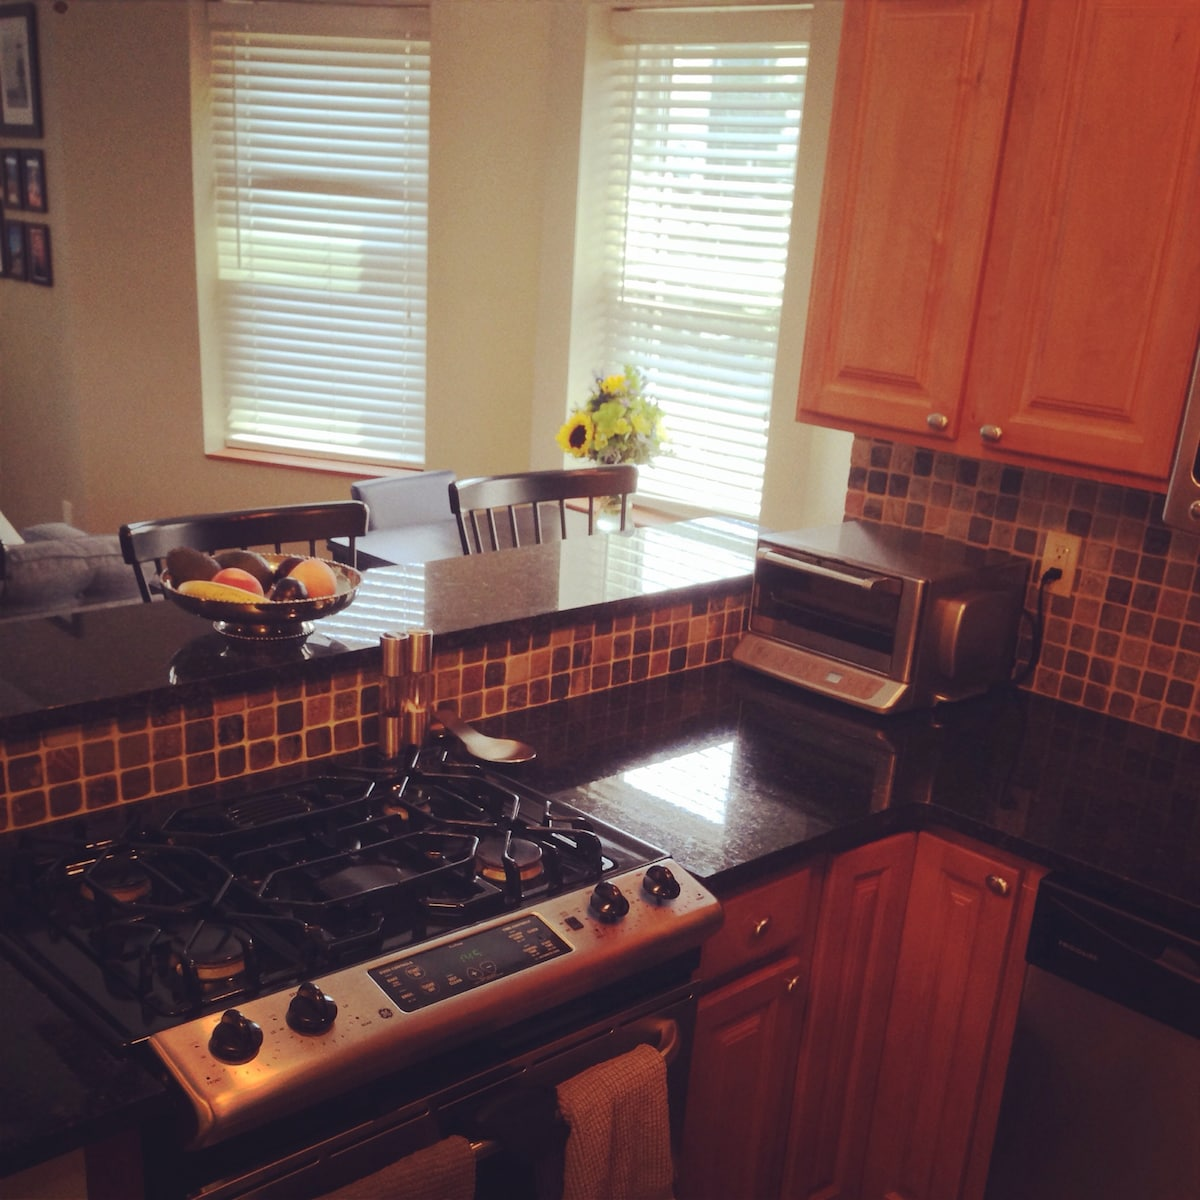 Modern kitchen with granite countertops and stainless steel appliances. Coffee maker available for use. Breakfast bar with 3 stools.